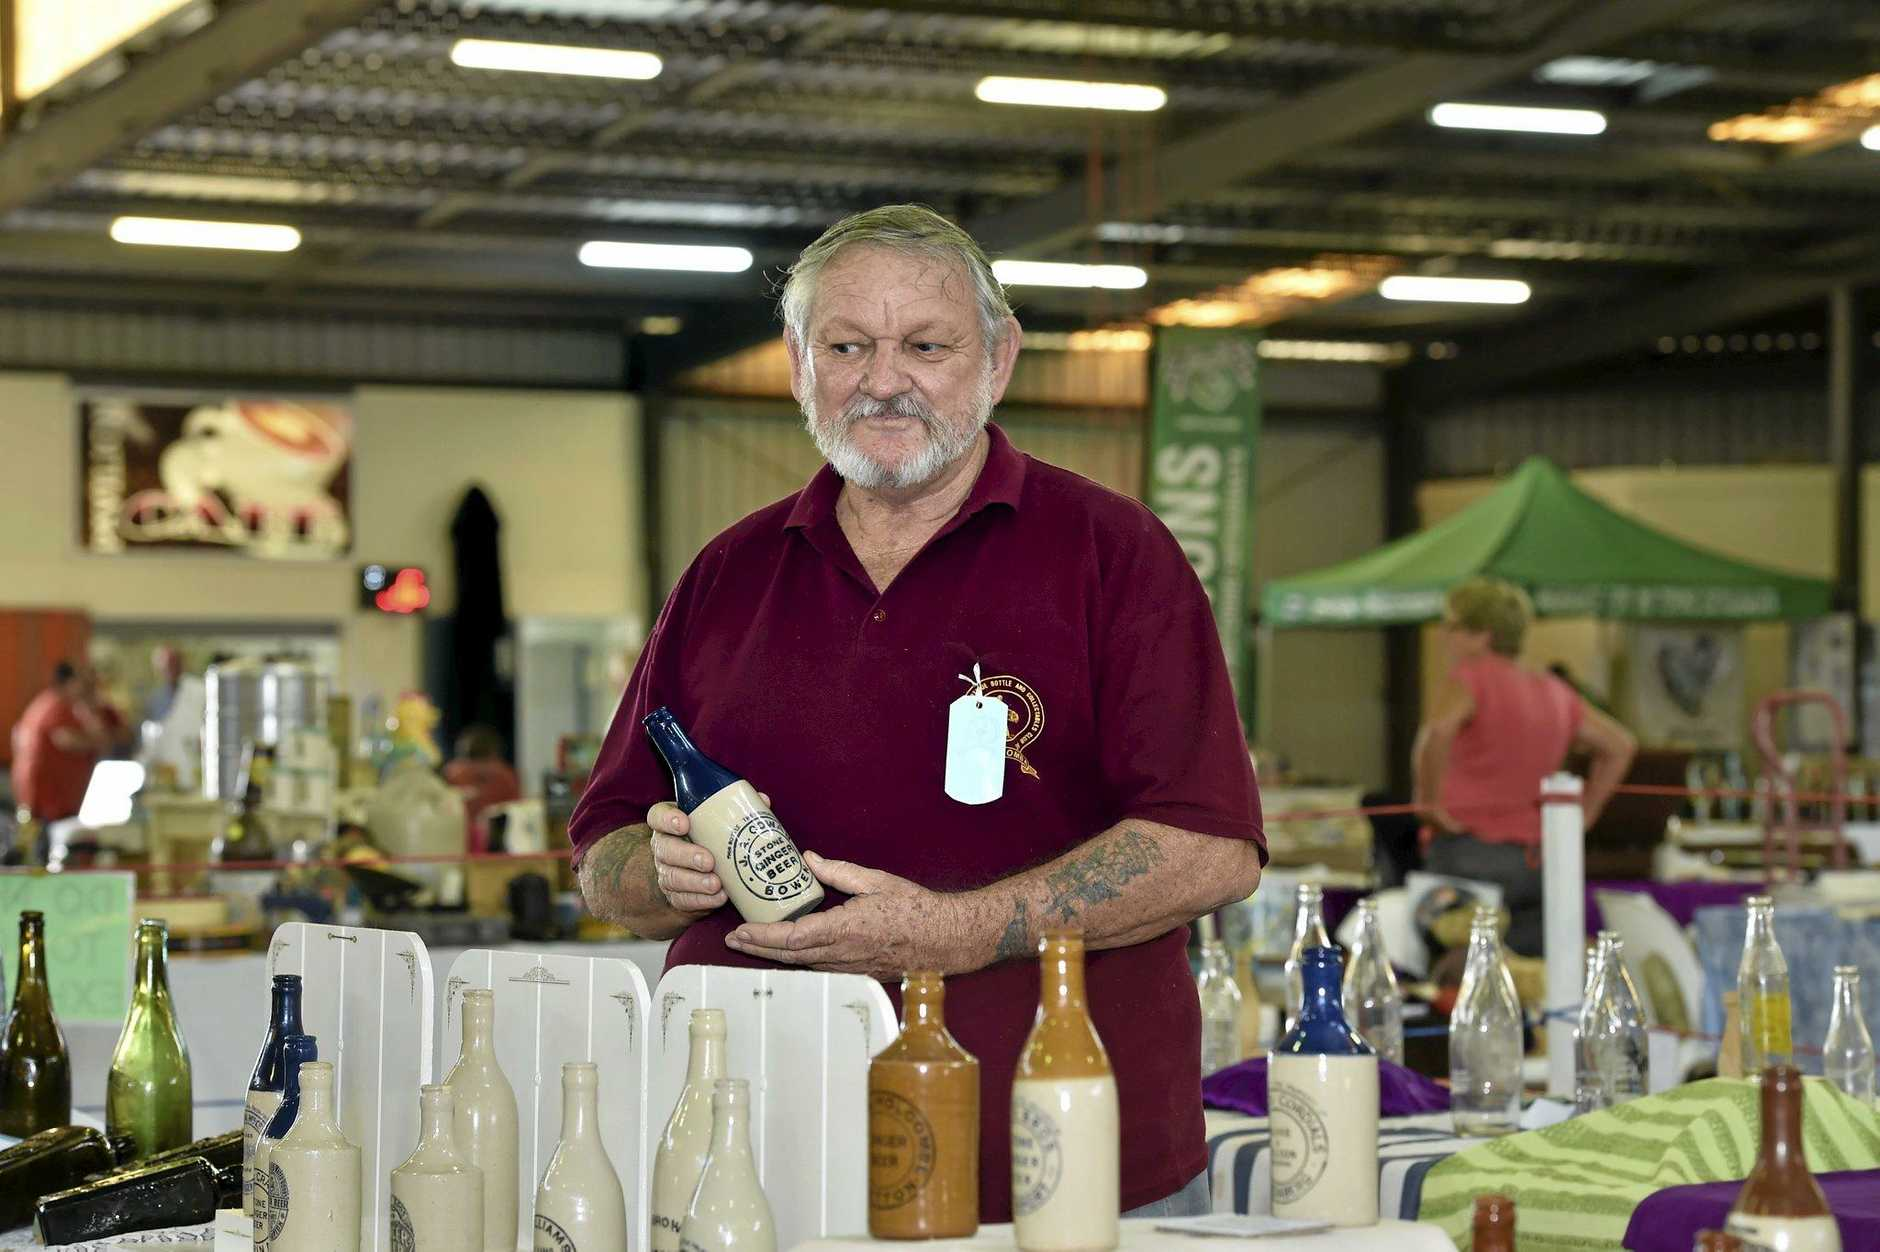 Daryl Jenkin at the Antiques and Collectables at Toowoomba ShowgroundsFebruary 21, 2016